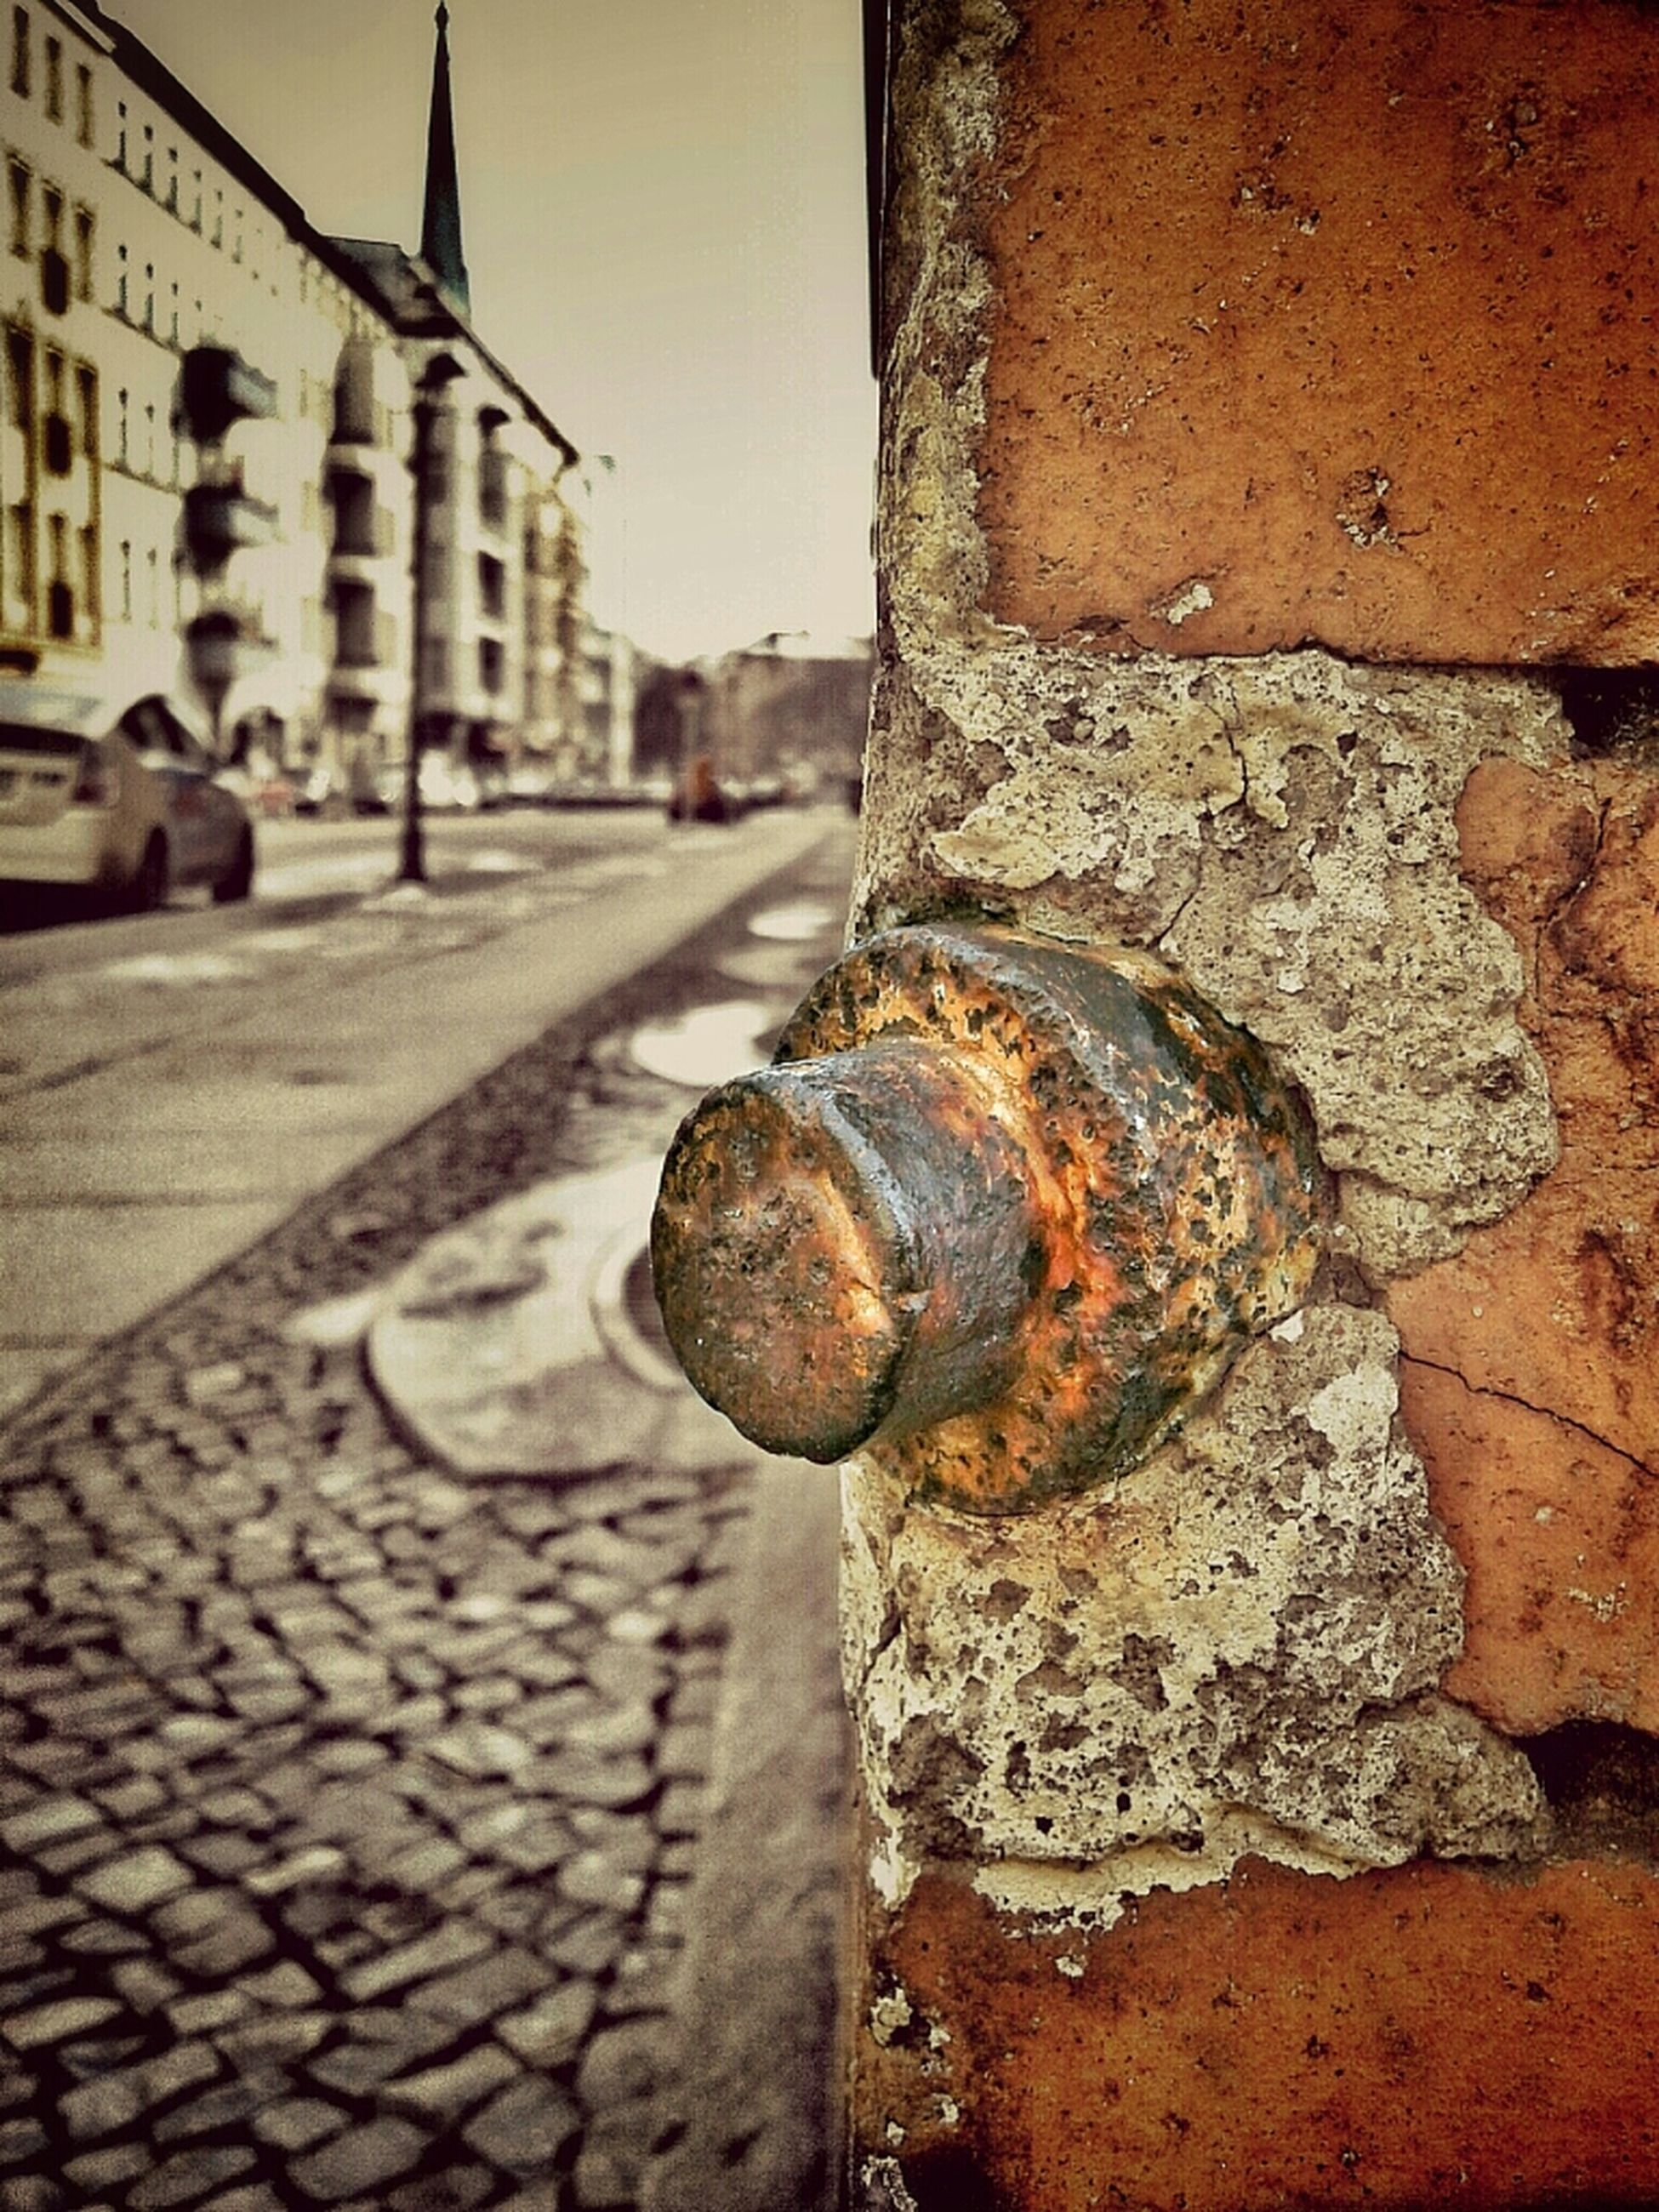 architecture, built structure, building exterior, focus on foreground, street, close-up, outdoors, day, sunlight, metal, city, weathered, building, sky, rusty, wall - building feature, old, no people, textured, road